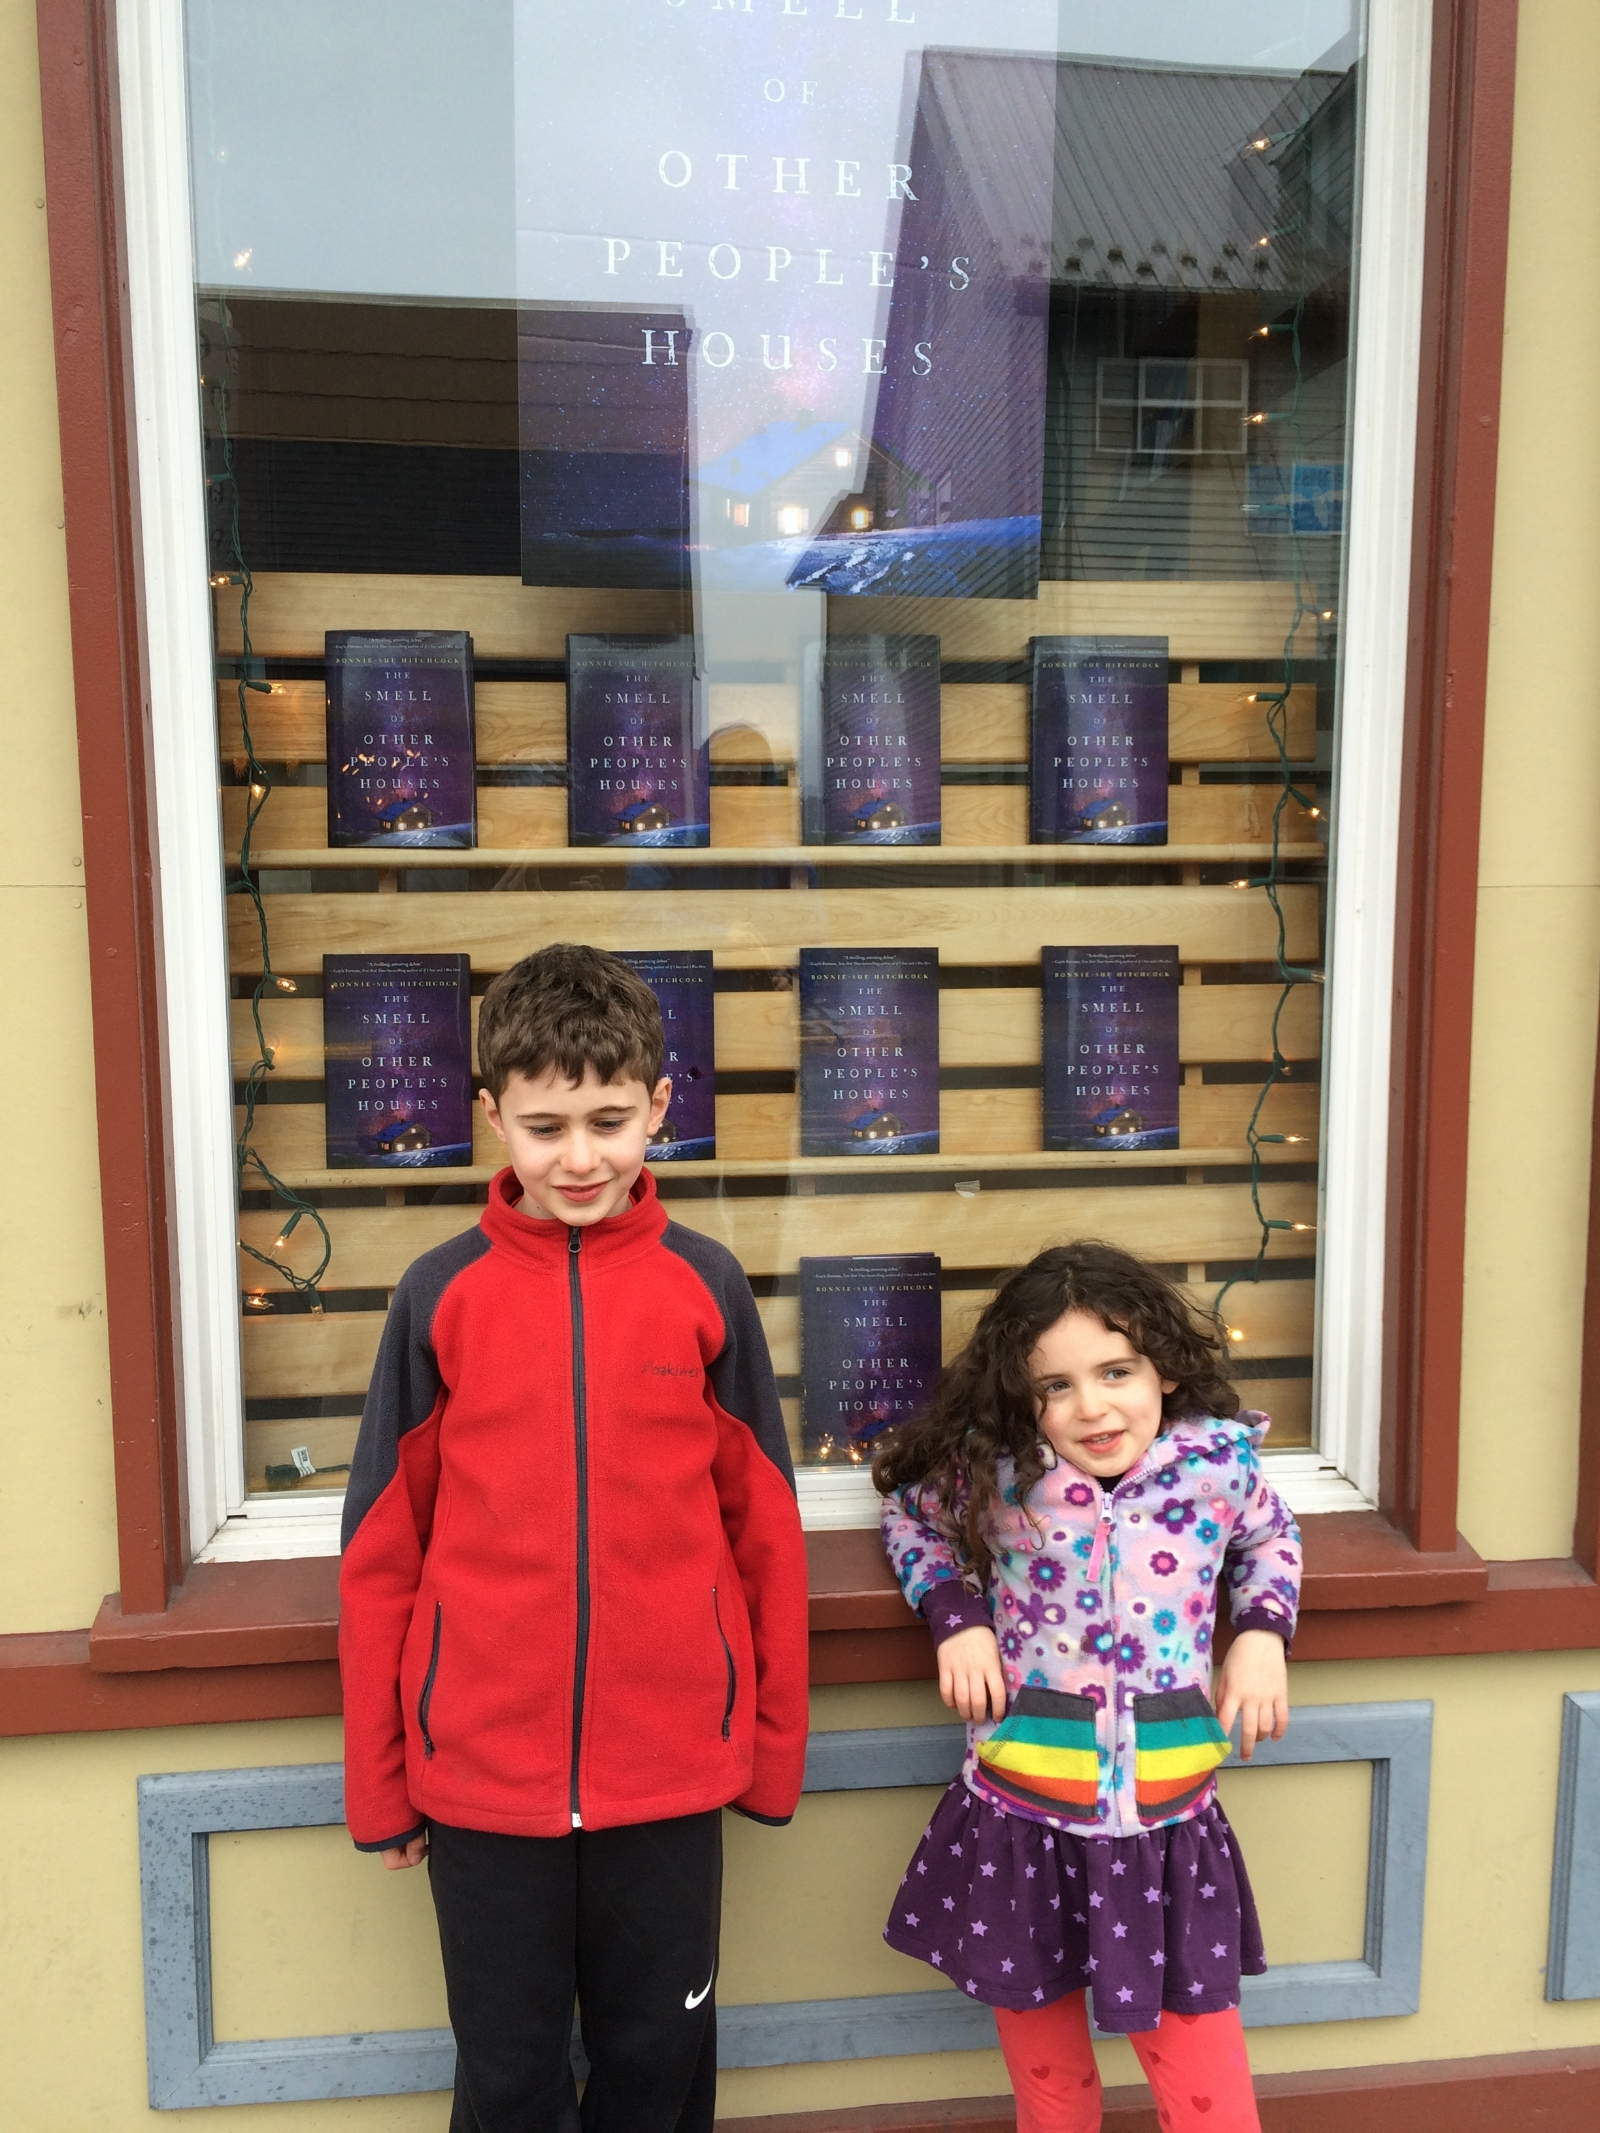 My niece and nephew in front of window display at Old Harbor Books, Sitka Alaska